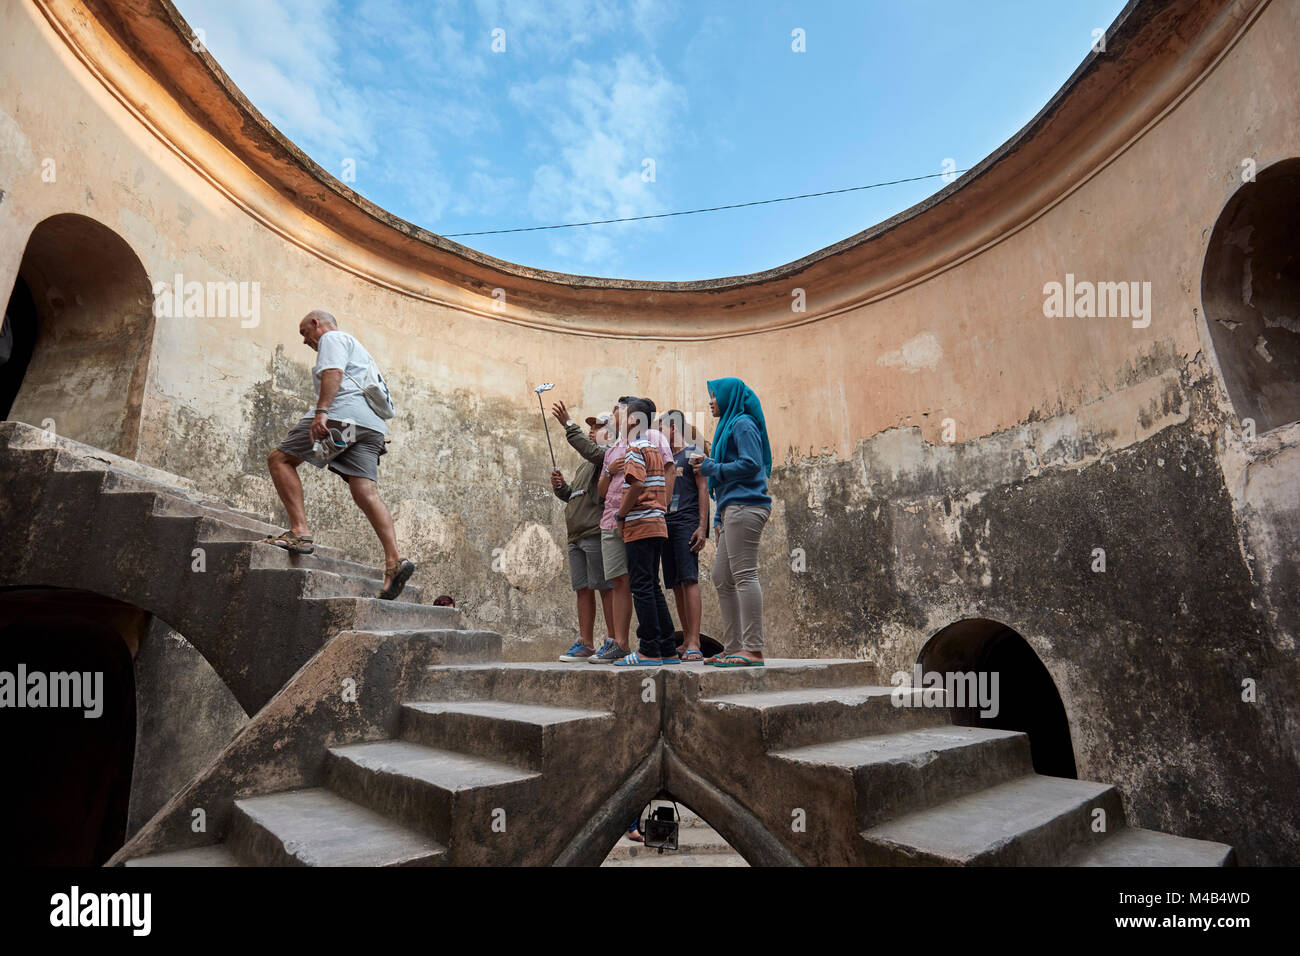 Tourists in Gumuling Well (Sumur Gumuling), one-storeyed circular structure, once used as a mosque. Taman Sari Water Stock Photo